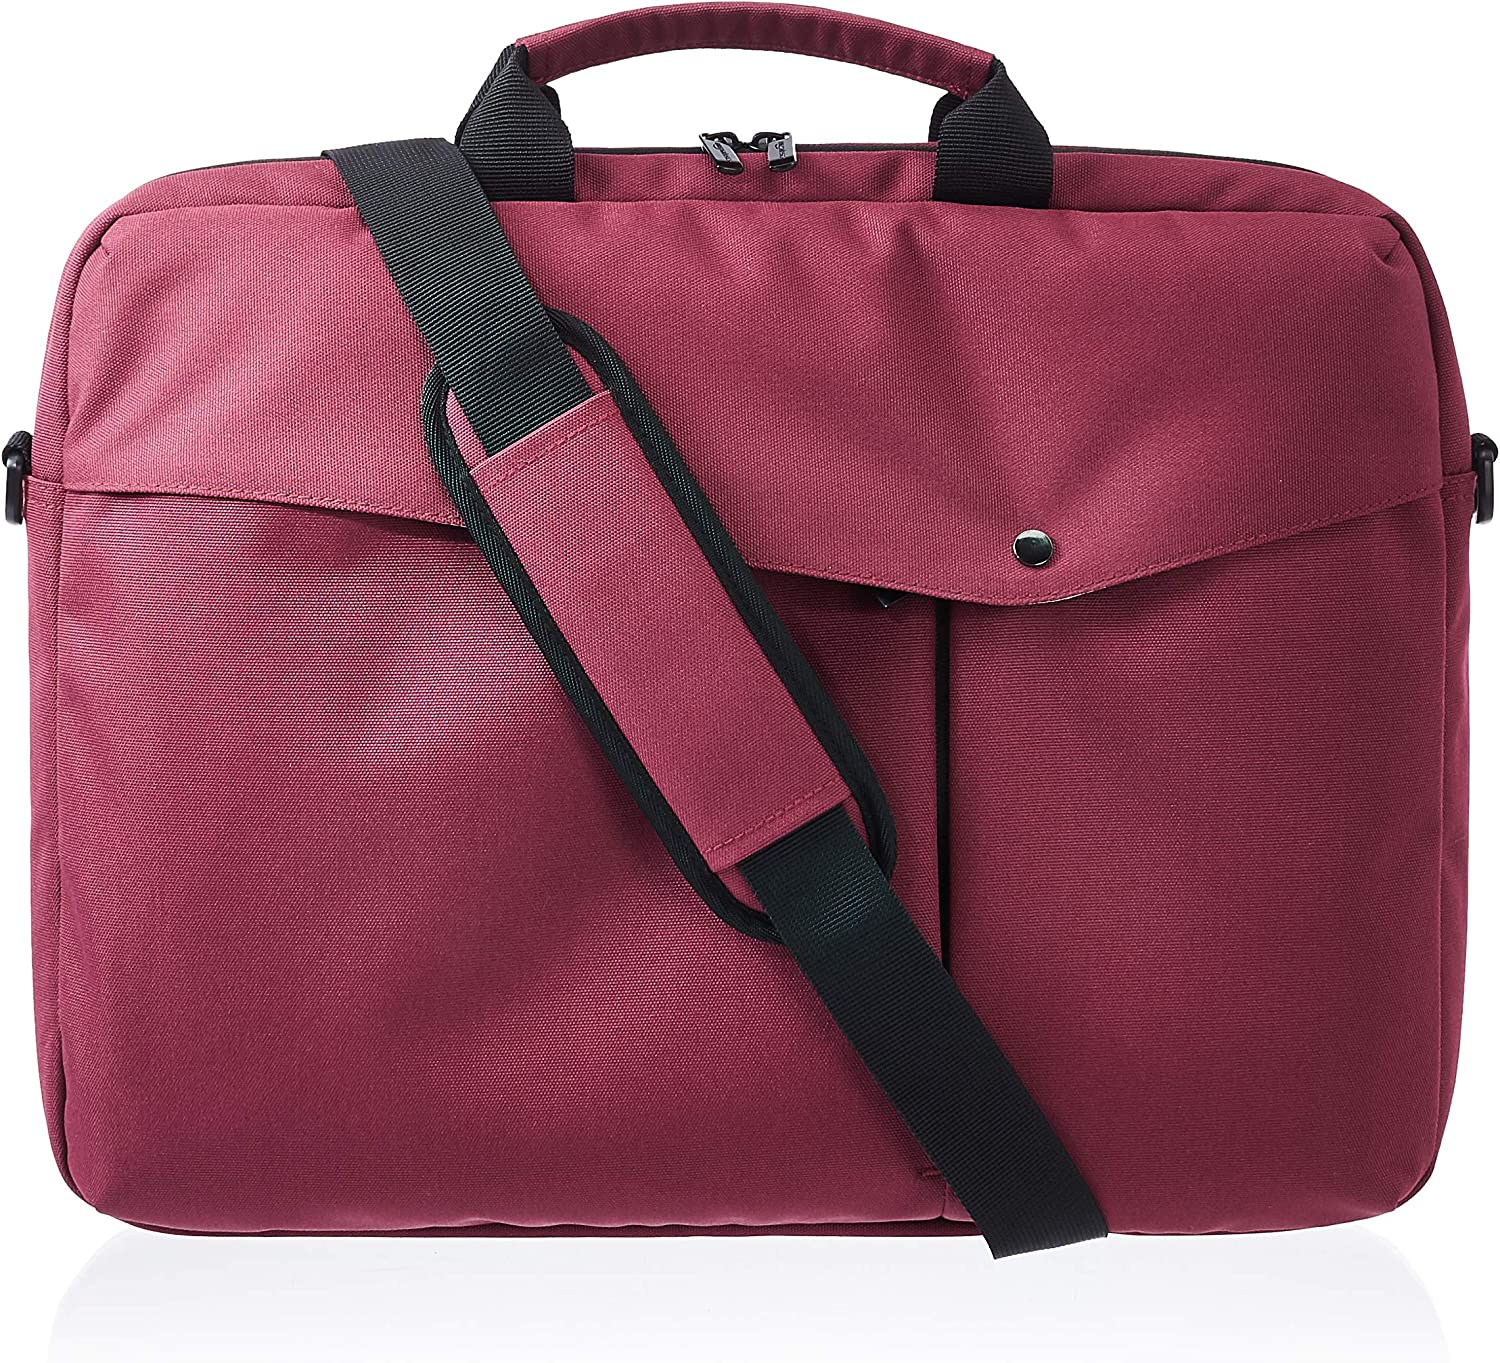 AmazonBasics Business Laptop Case - 17-Inch, Maroon